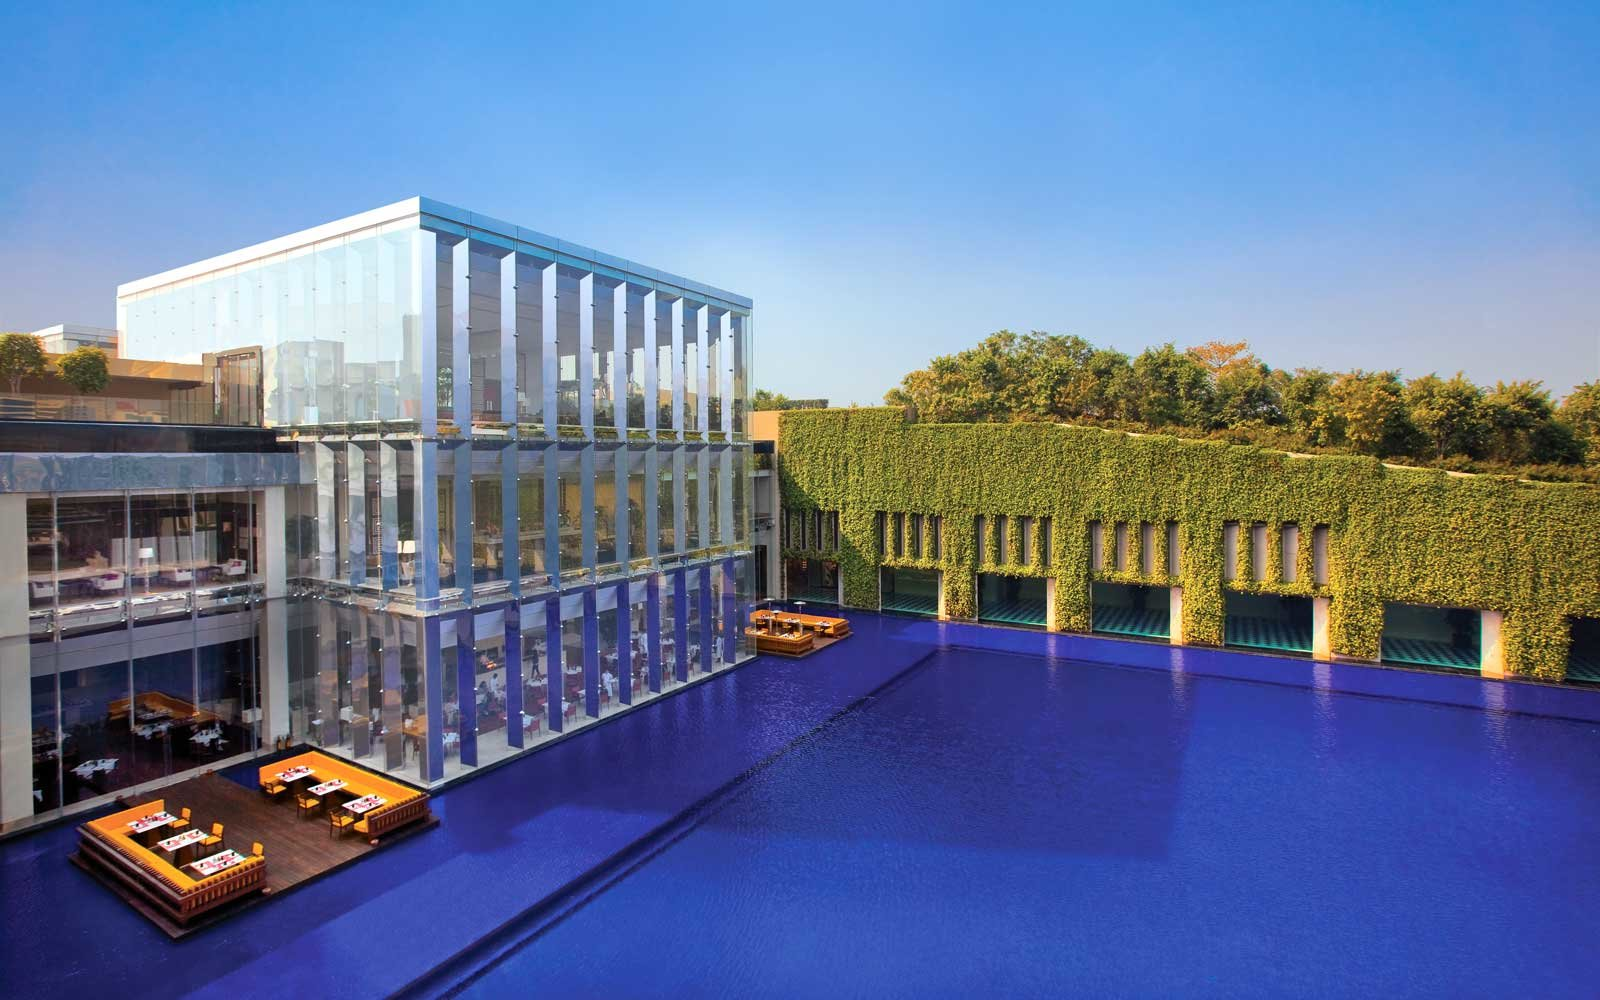 Exterior view of the Oberoi Gurgaon